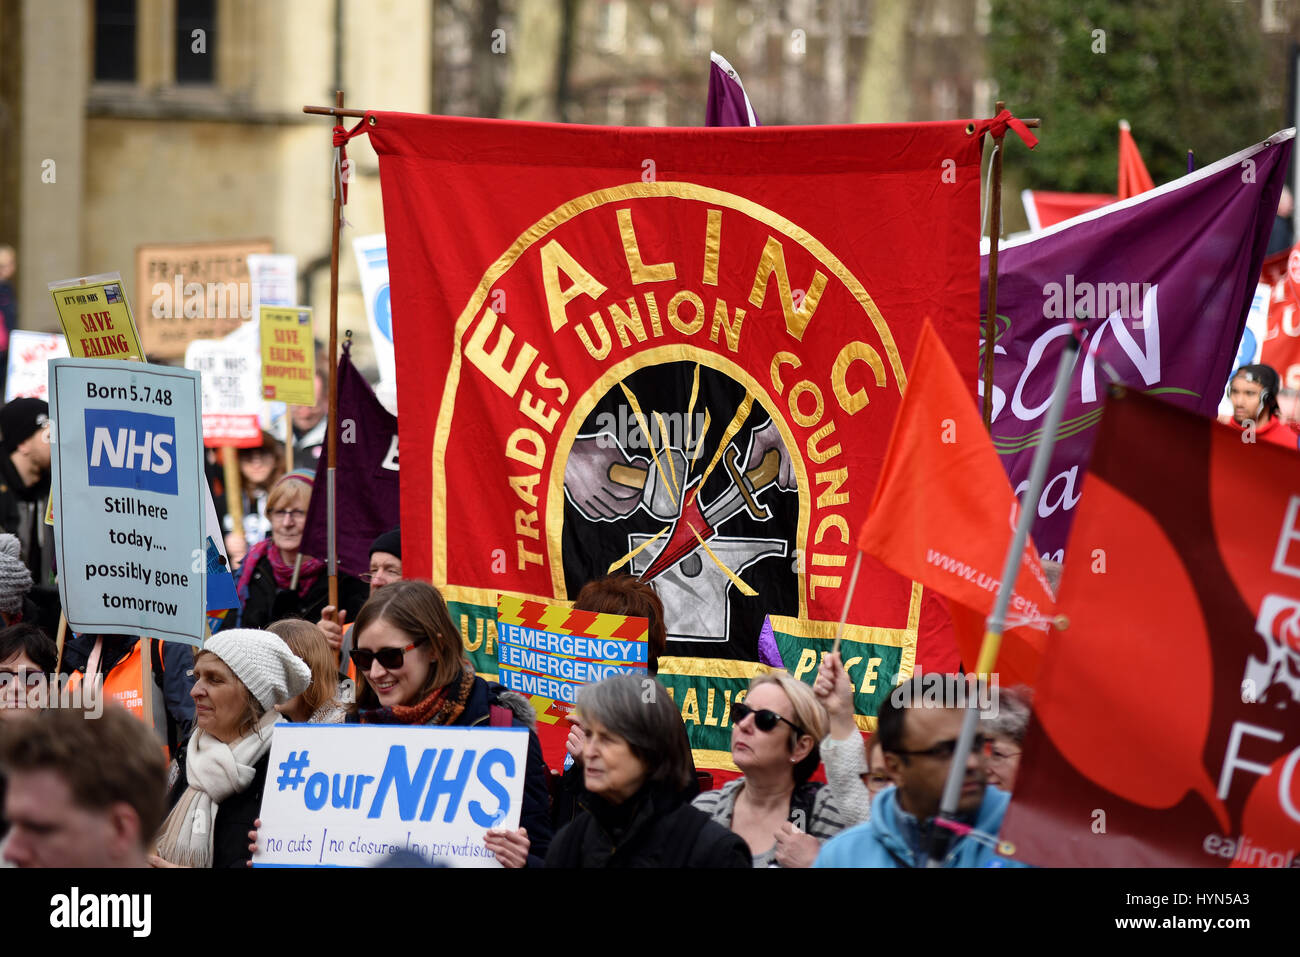 Ealing Trades Union Council banner during the 'Our NHS' support for the National Health Service demonstration - Stock Image